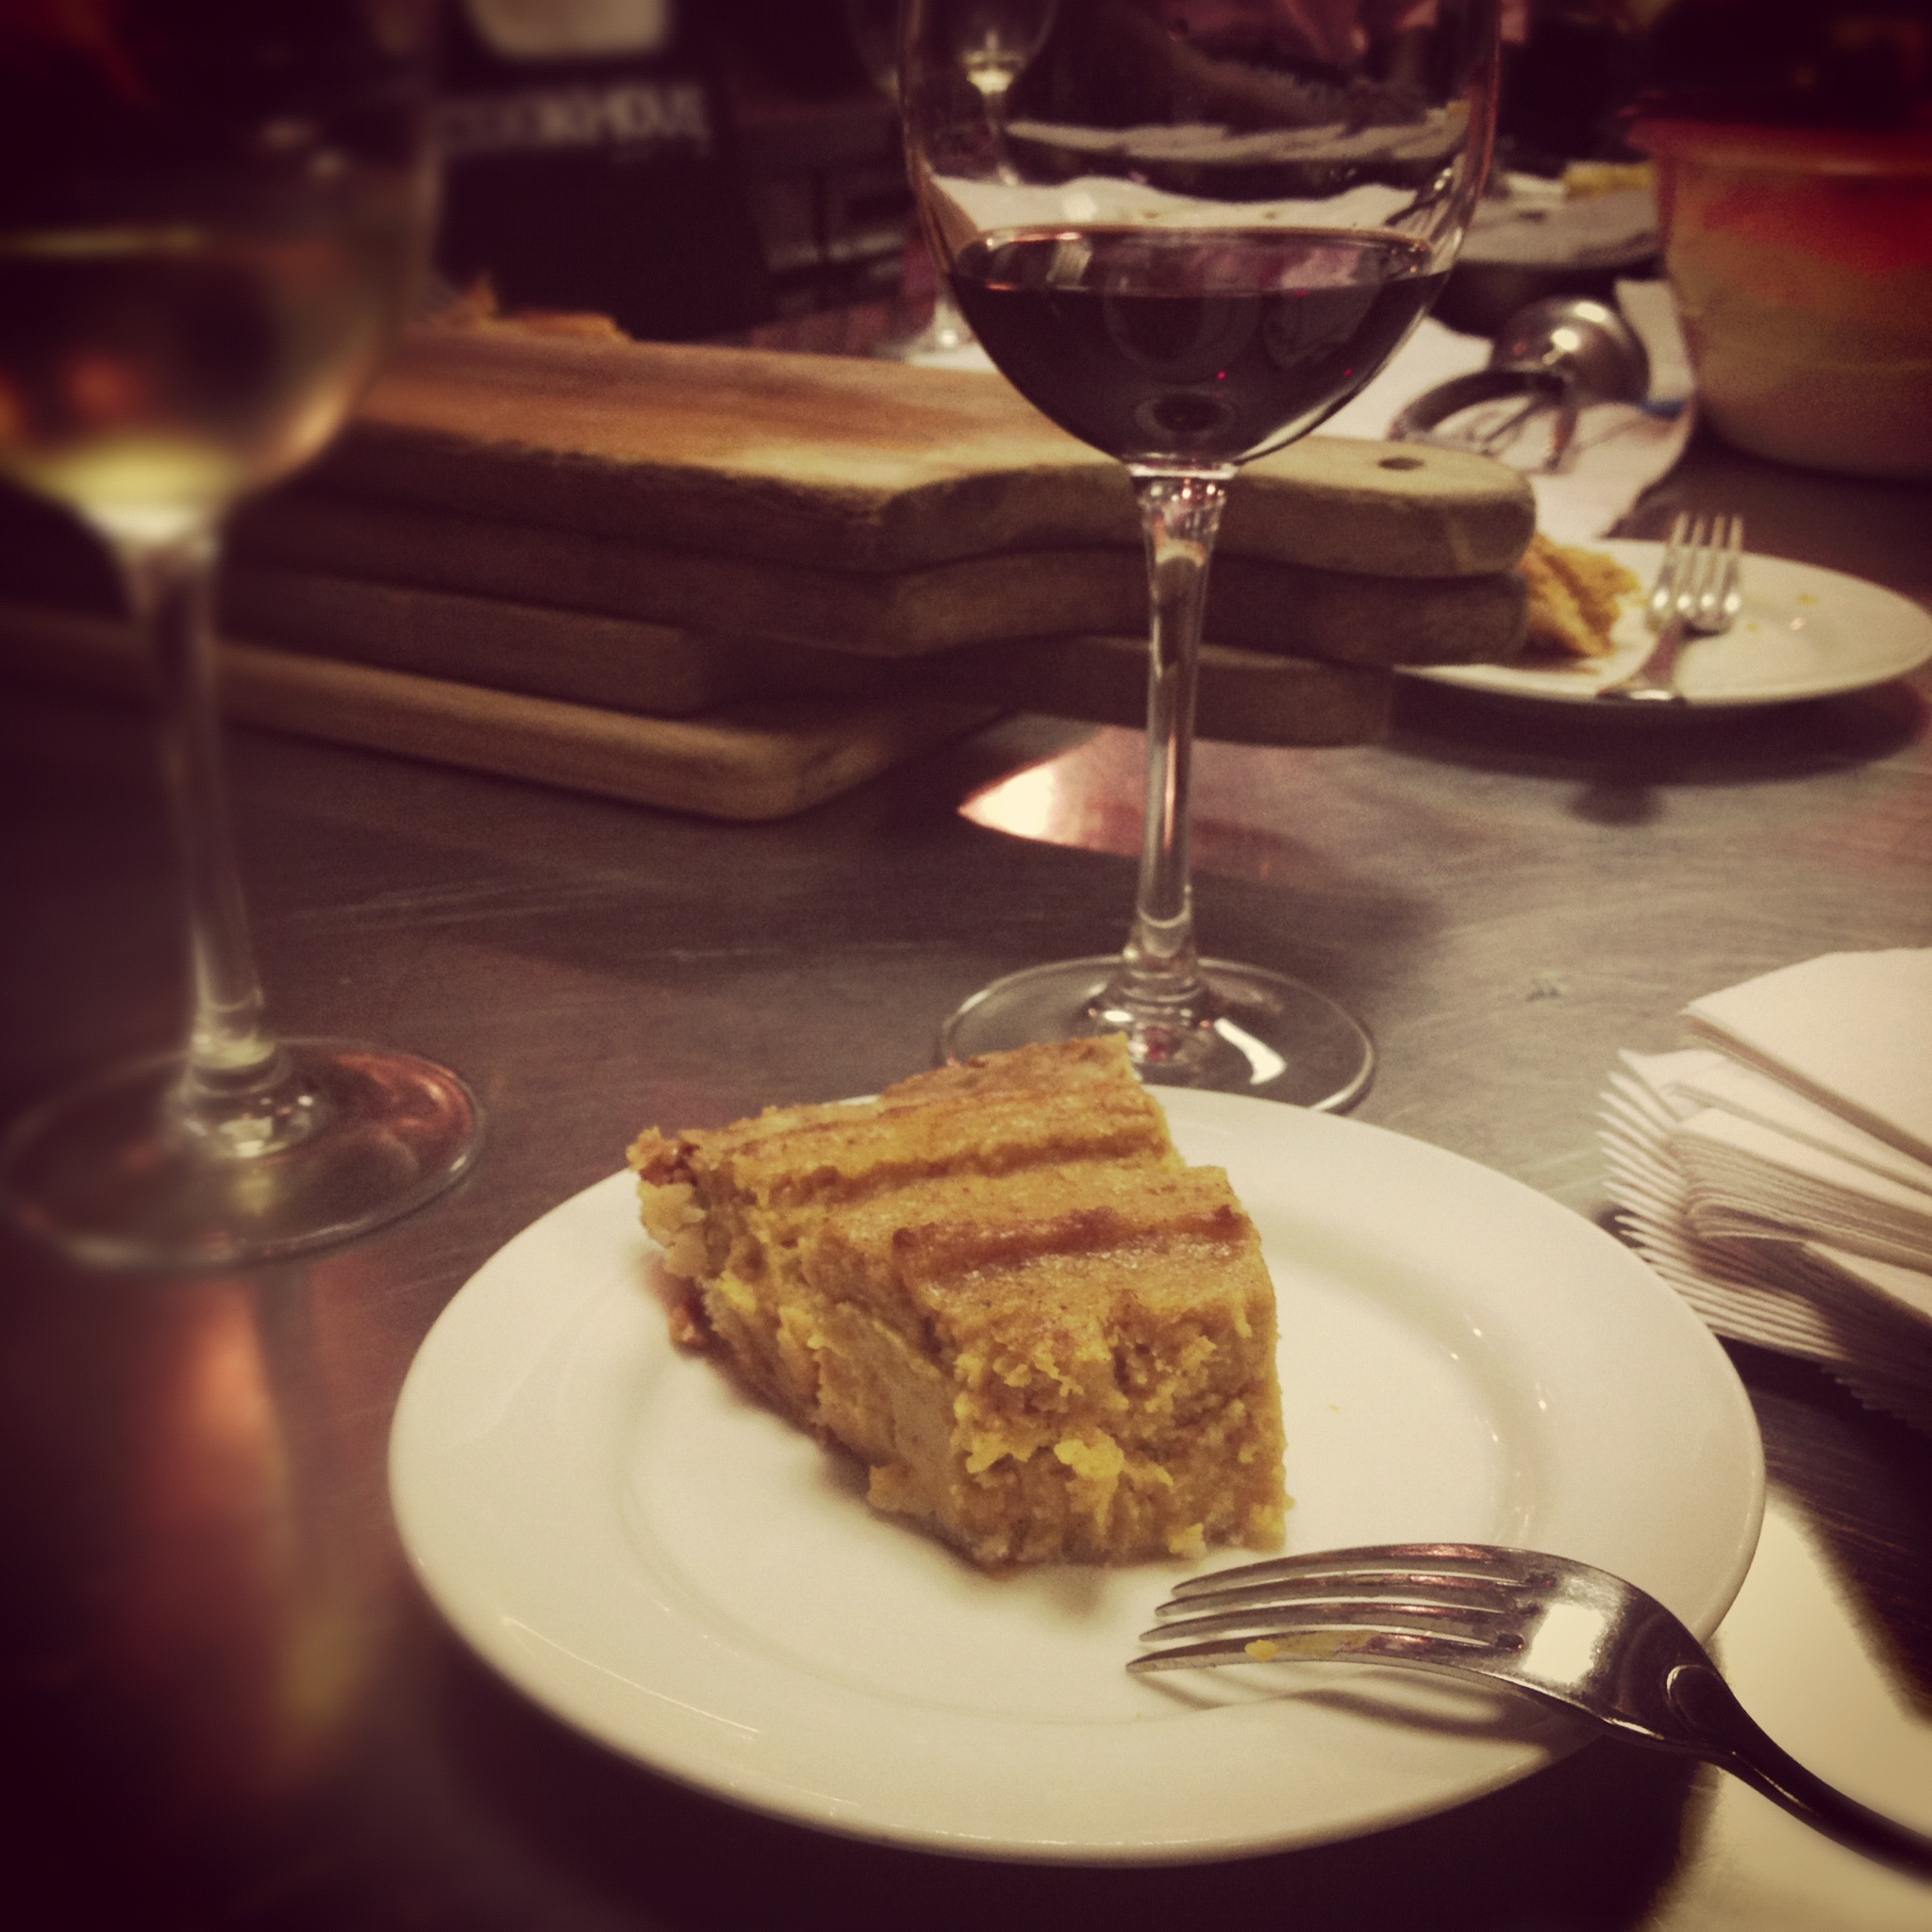 A slice of sweet potato pie and a glass of red wine #singlegirldinner